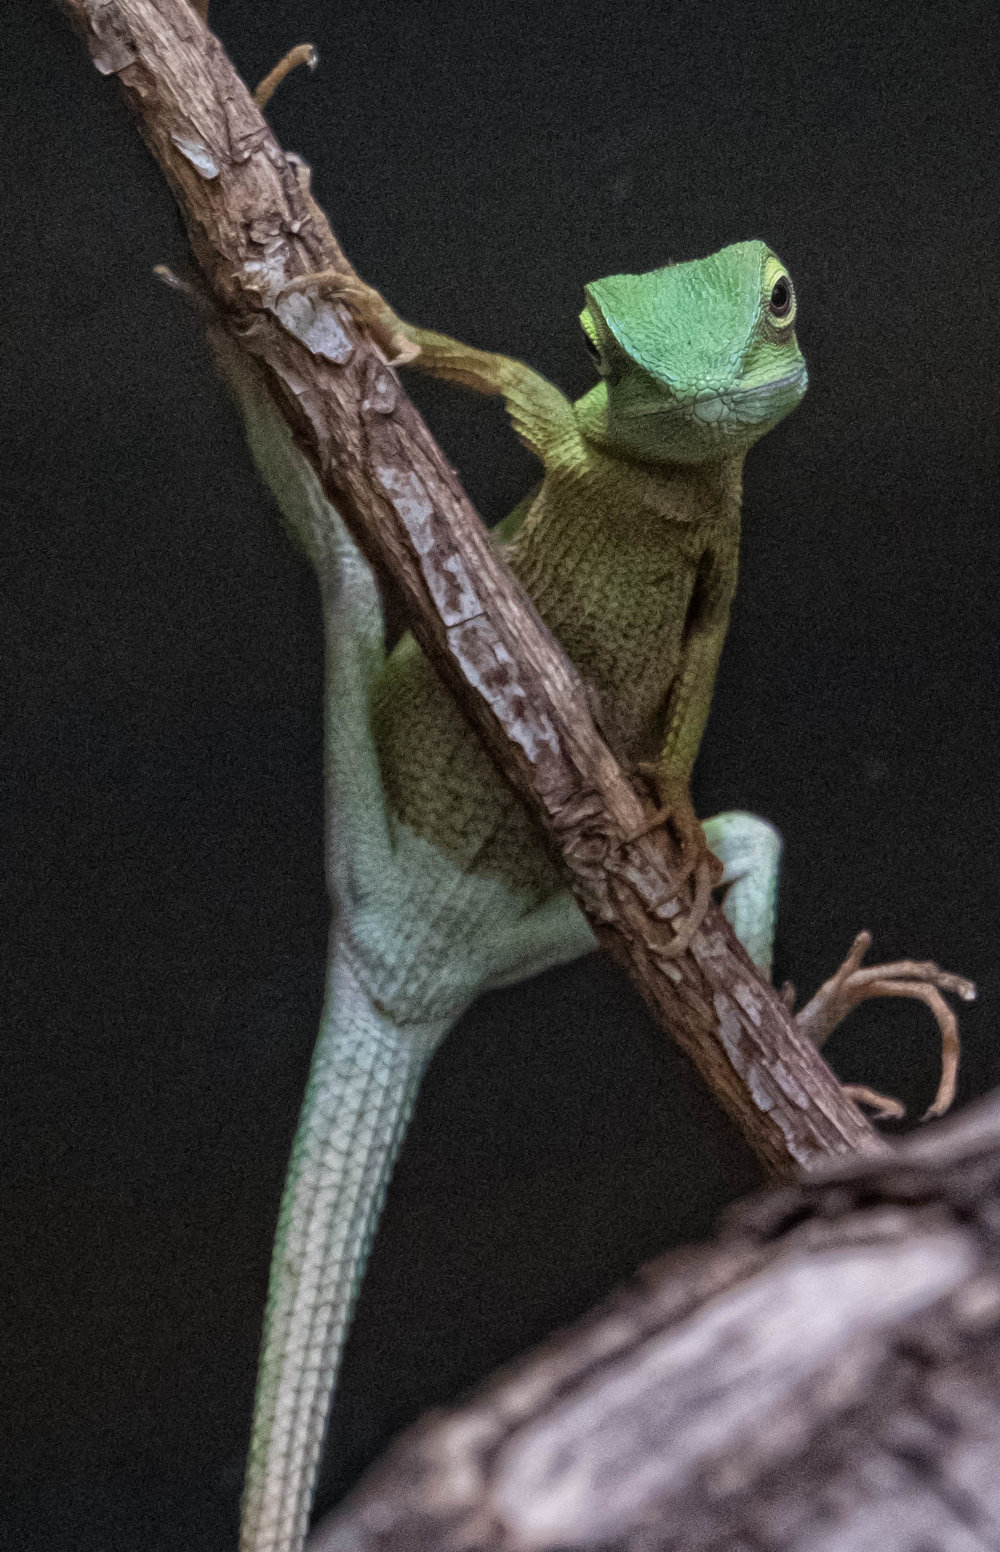 29 January 2018 Dublin Zoo Green Crested Lizard-.jpg